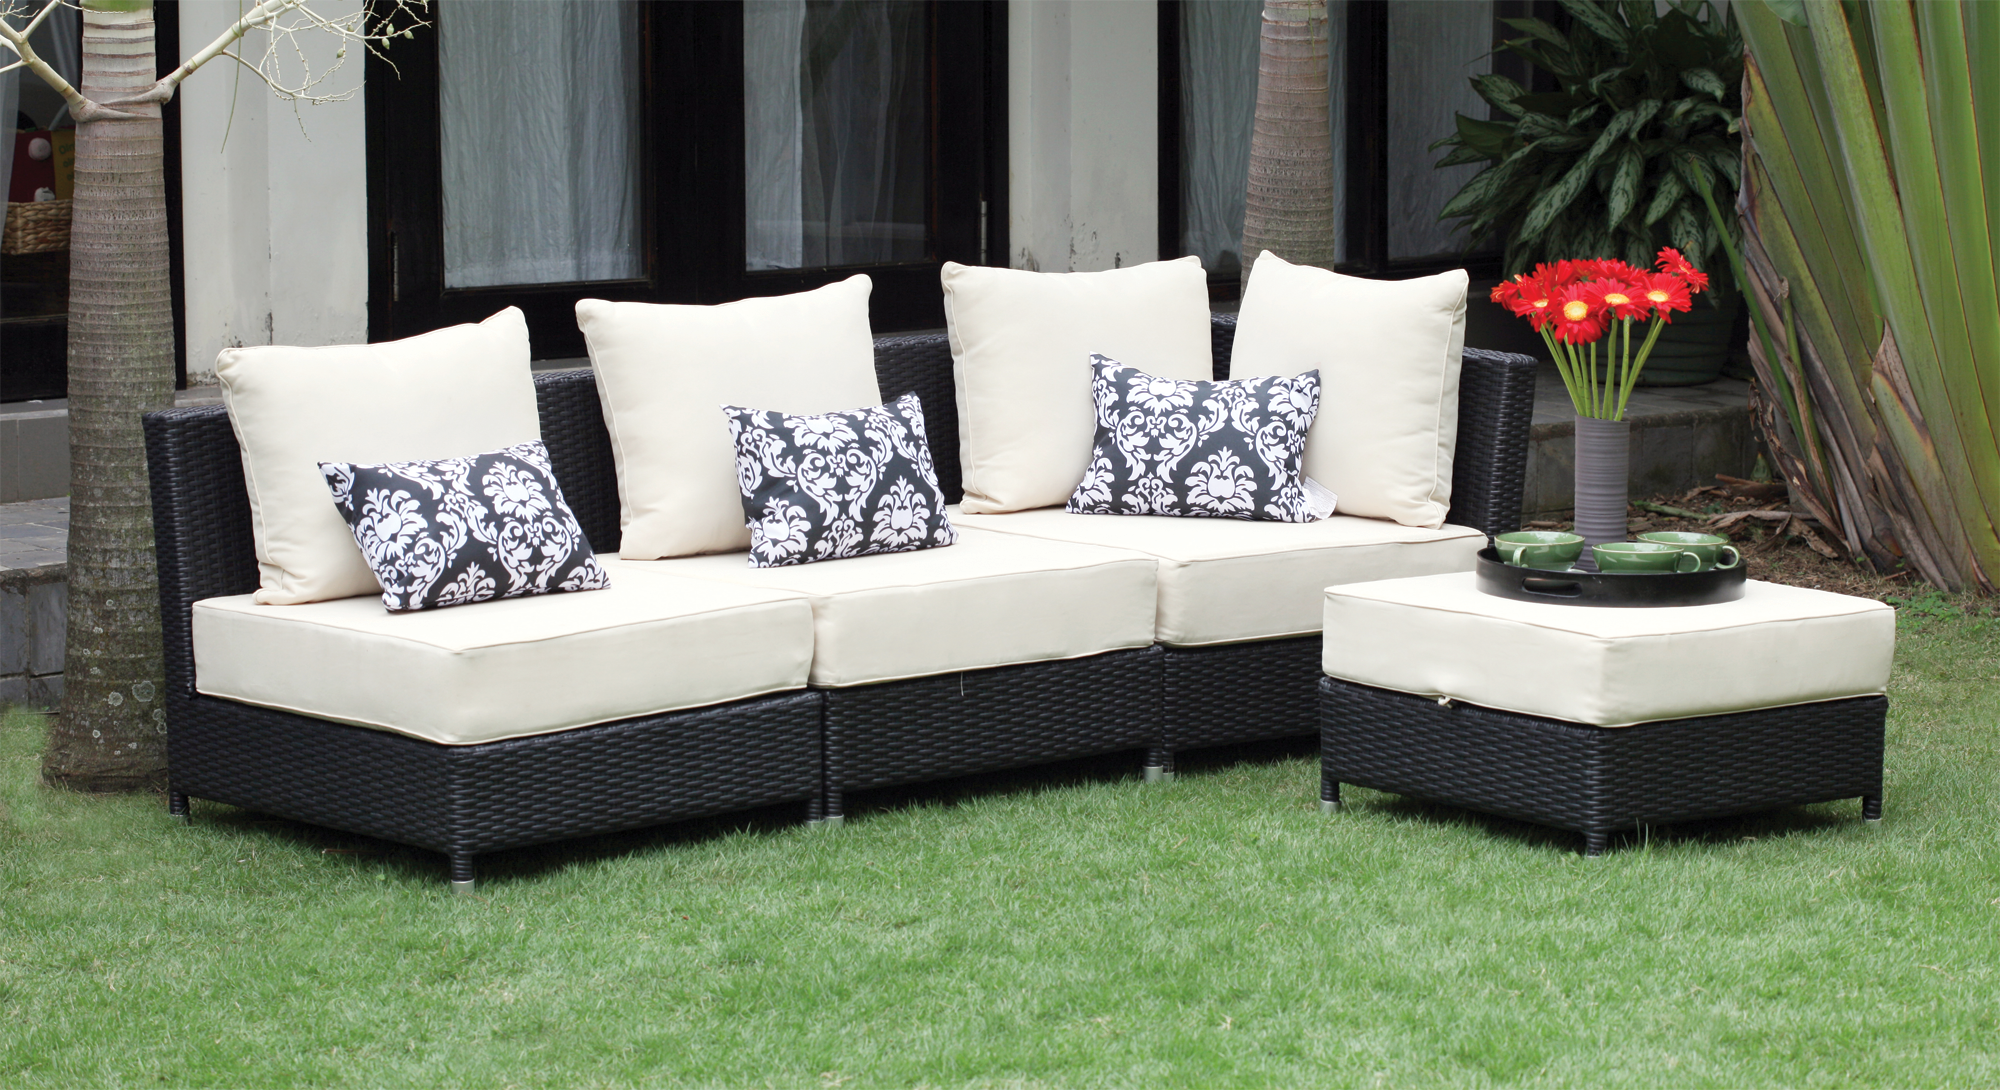 bondi polyrattan sofa set black jysk canada outdoor lounge home decor furniture